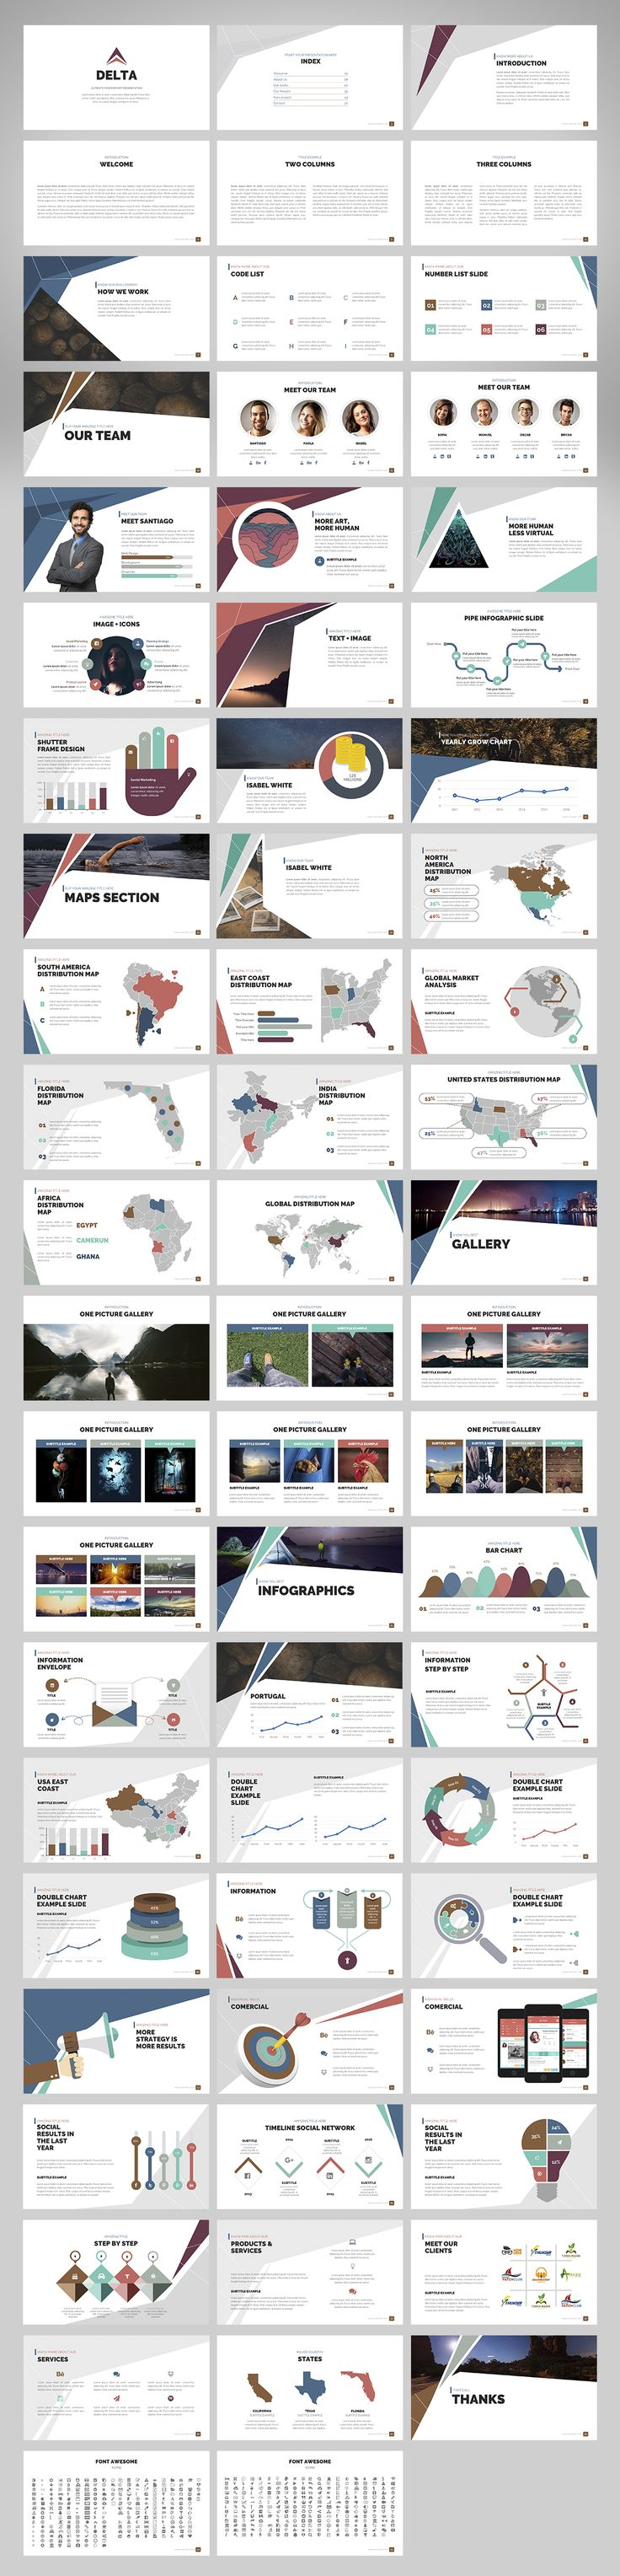 Delta | Powerpoint Template by Zacomic Studios on @creativemarket